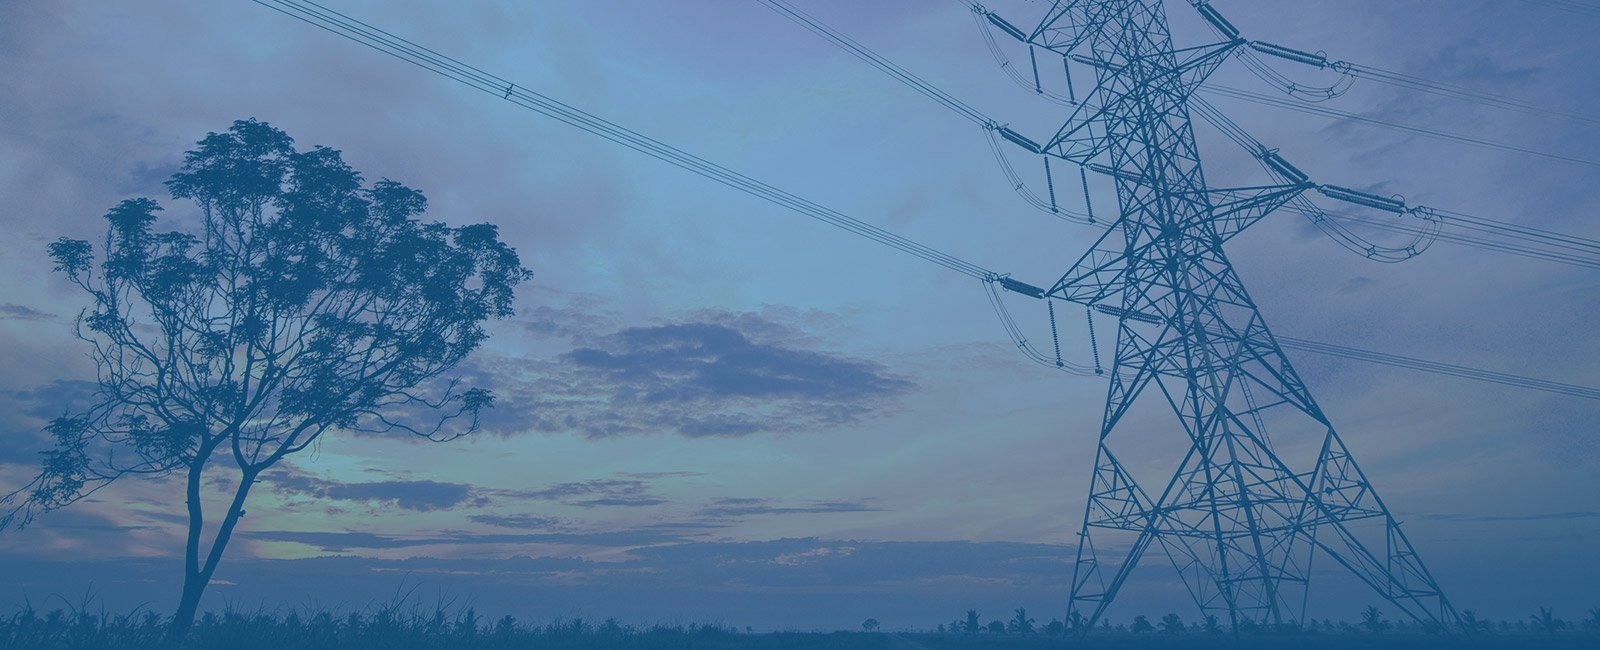 hight resolution of digital power grid and environment